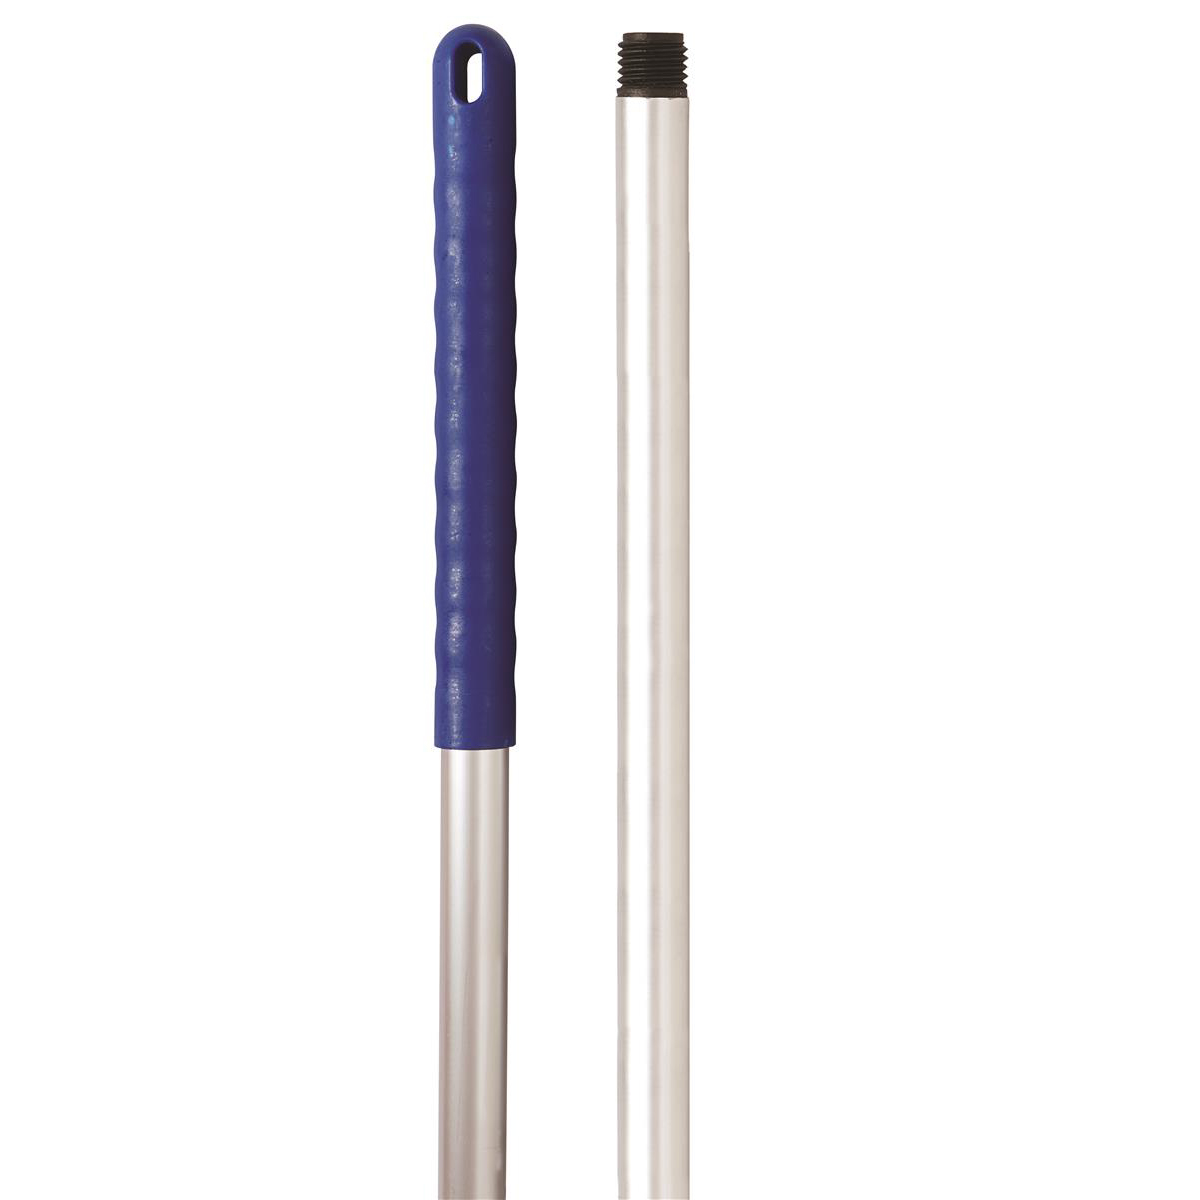 Broom or mop handles Robert Scott & Sons Abbey Hygiene Mop Handle Aluminium Colour-coded Screw 125cm Blue Ref AH49BL